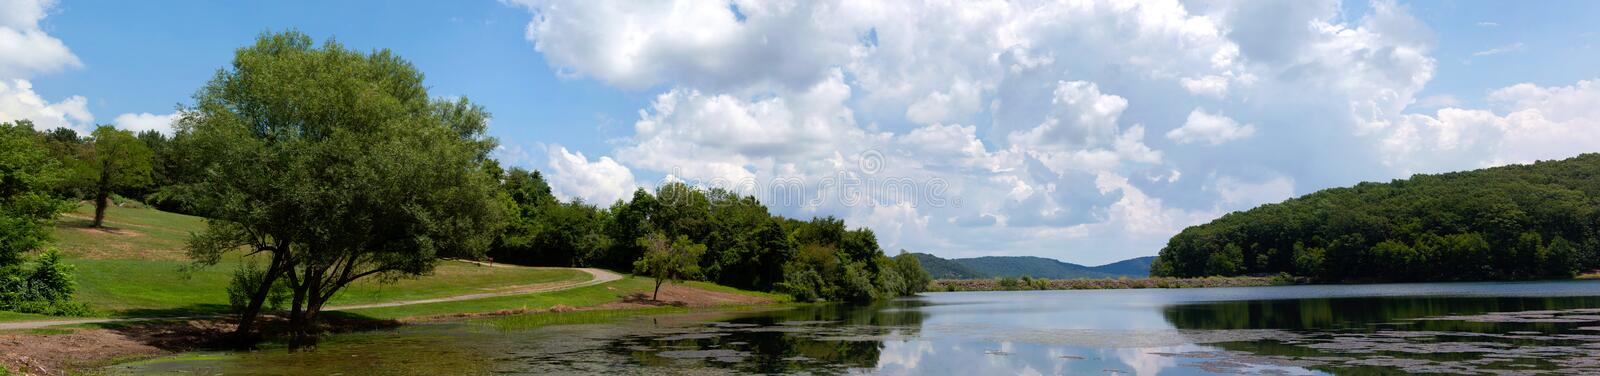 Landscape with lake forest, mountain and blue sky stock image